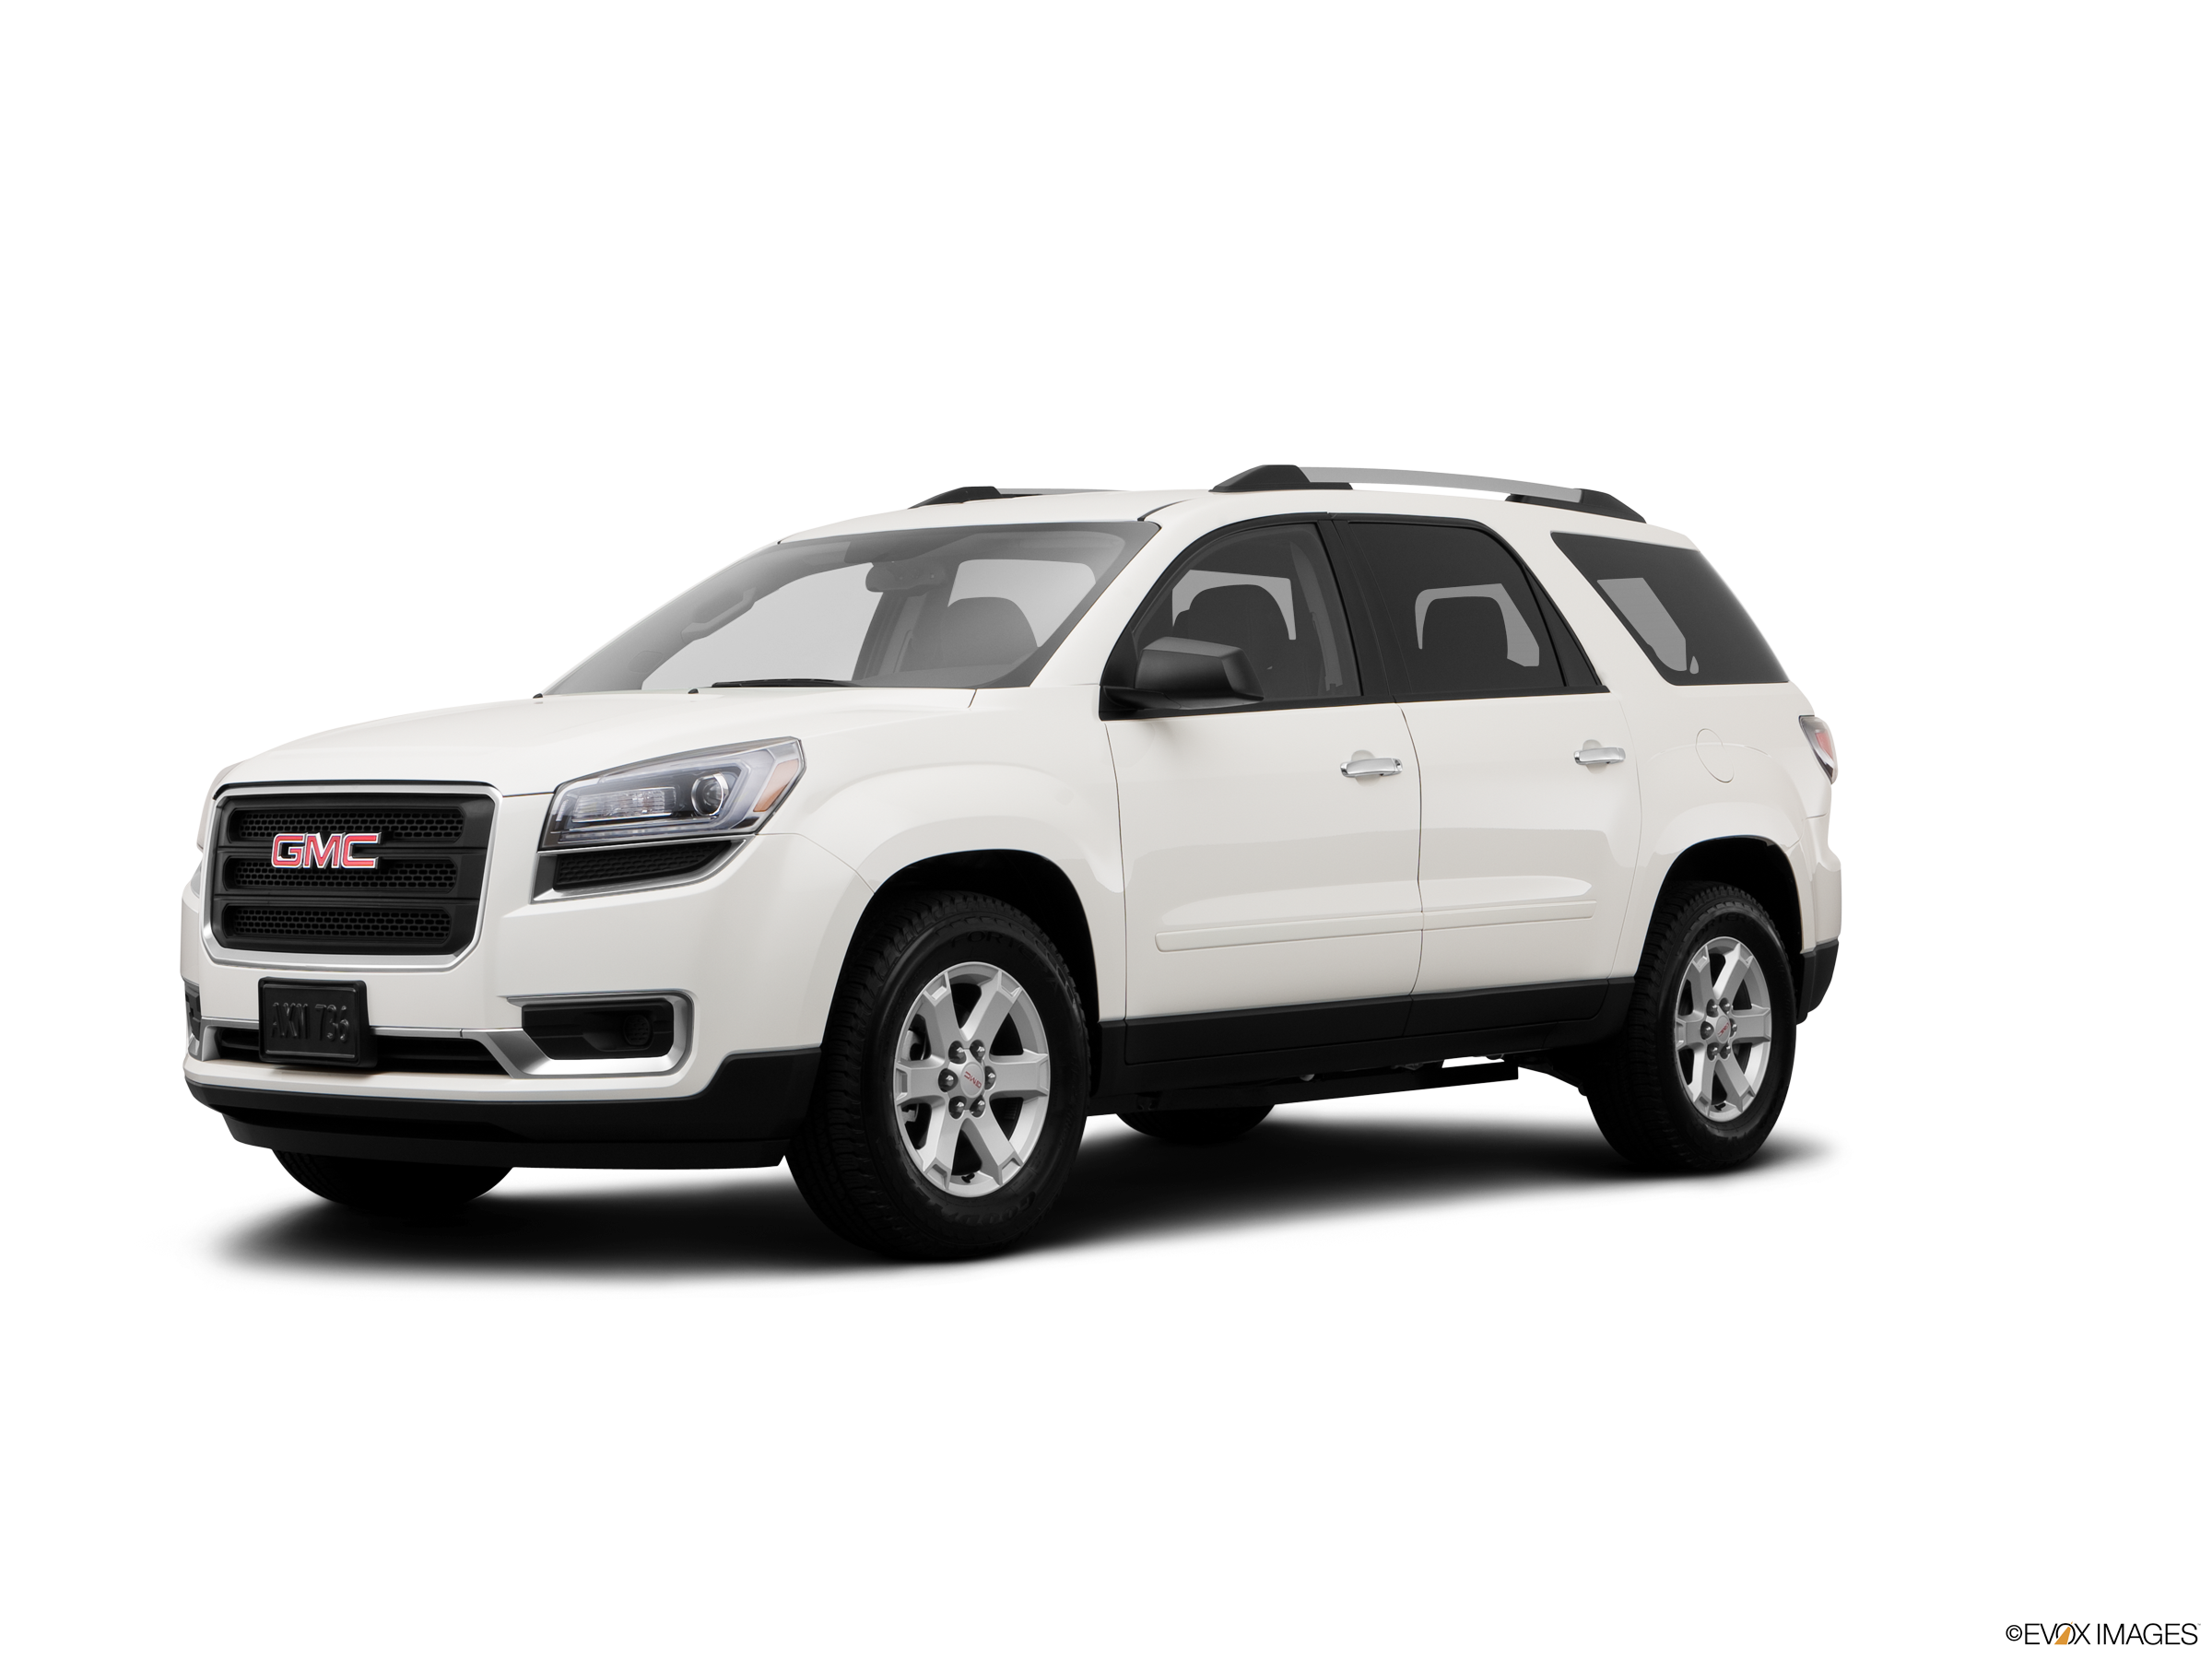 Used 2014 Gmc Acadia Values Cars For Sale Kelley Blue Book